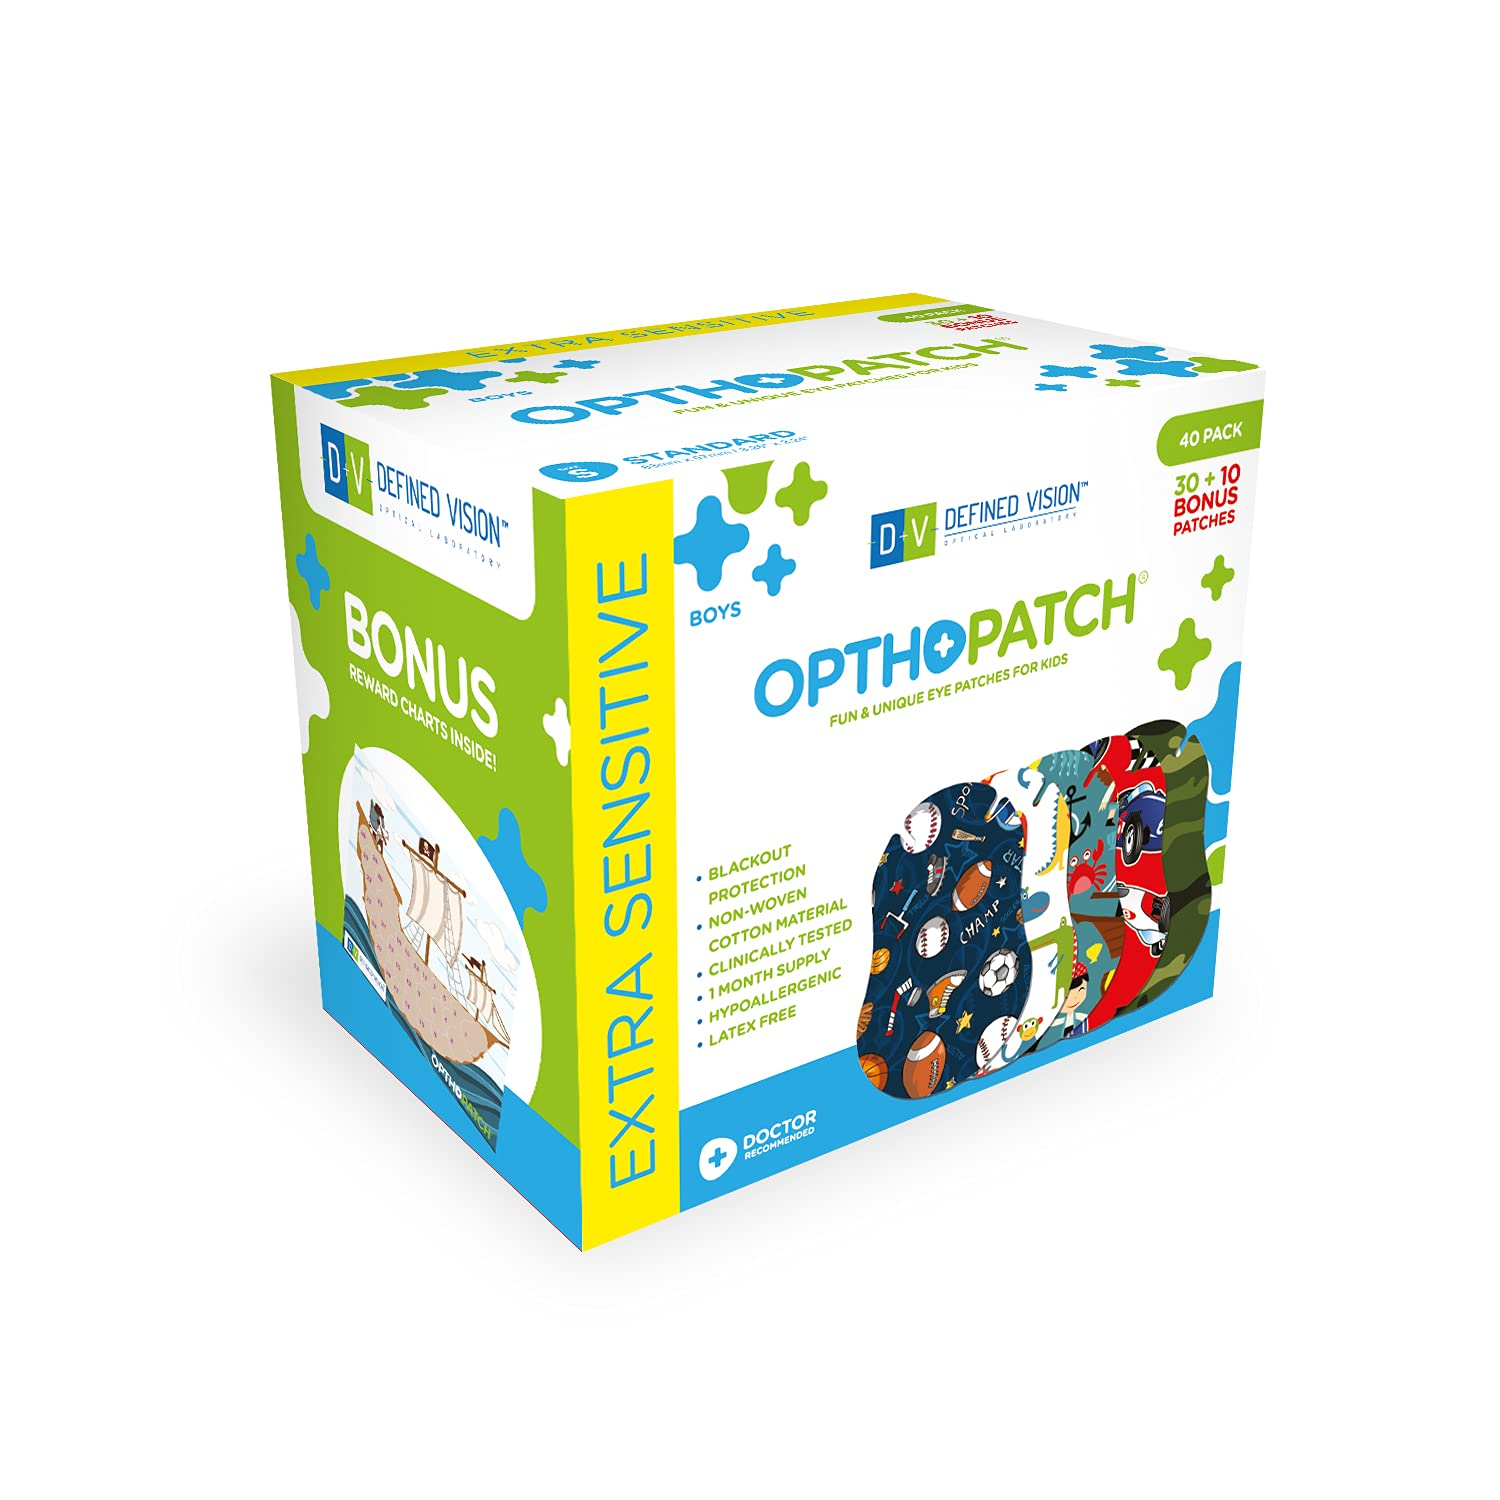 Opthopatch Kids Eye Patches - Fun Boys Design - 30 + 10 Bonus Latex Free Hypoallergenic Cotton Adhesive Bandages for Amblyopia and Cross Eye by Defined Vision